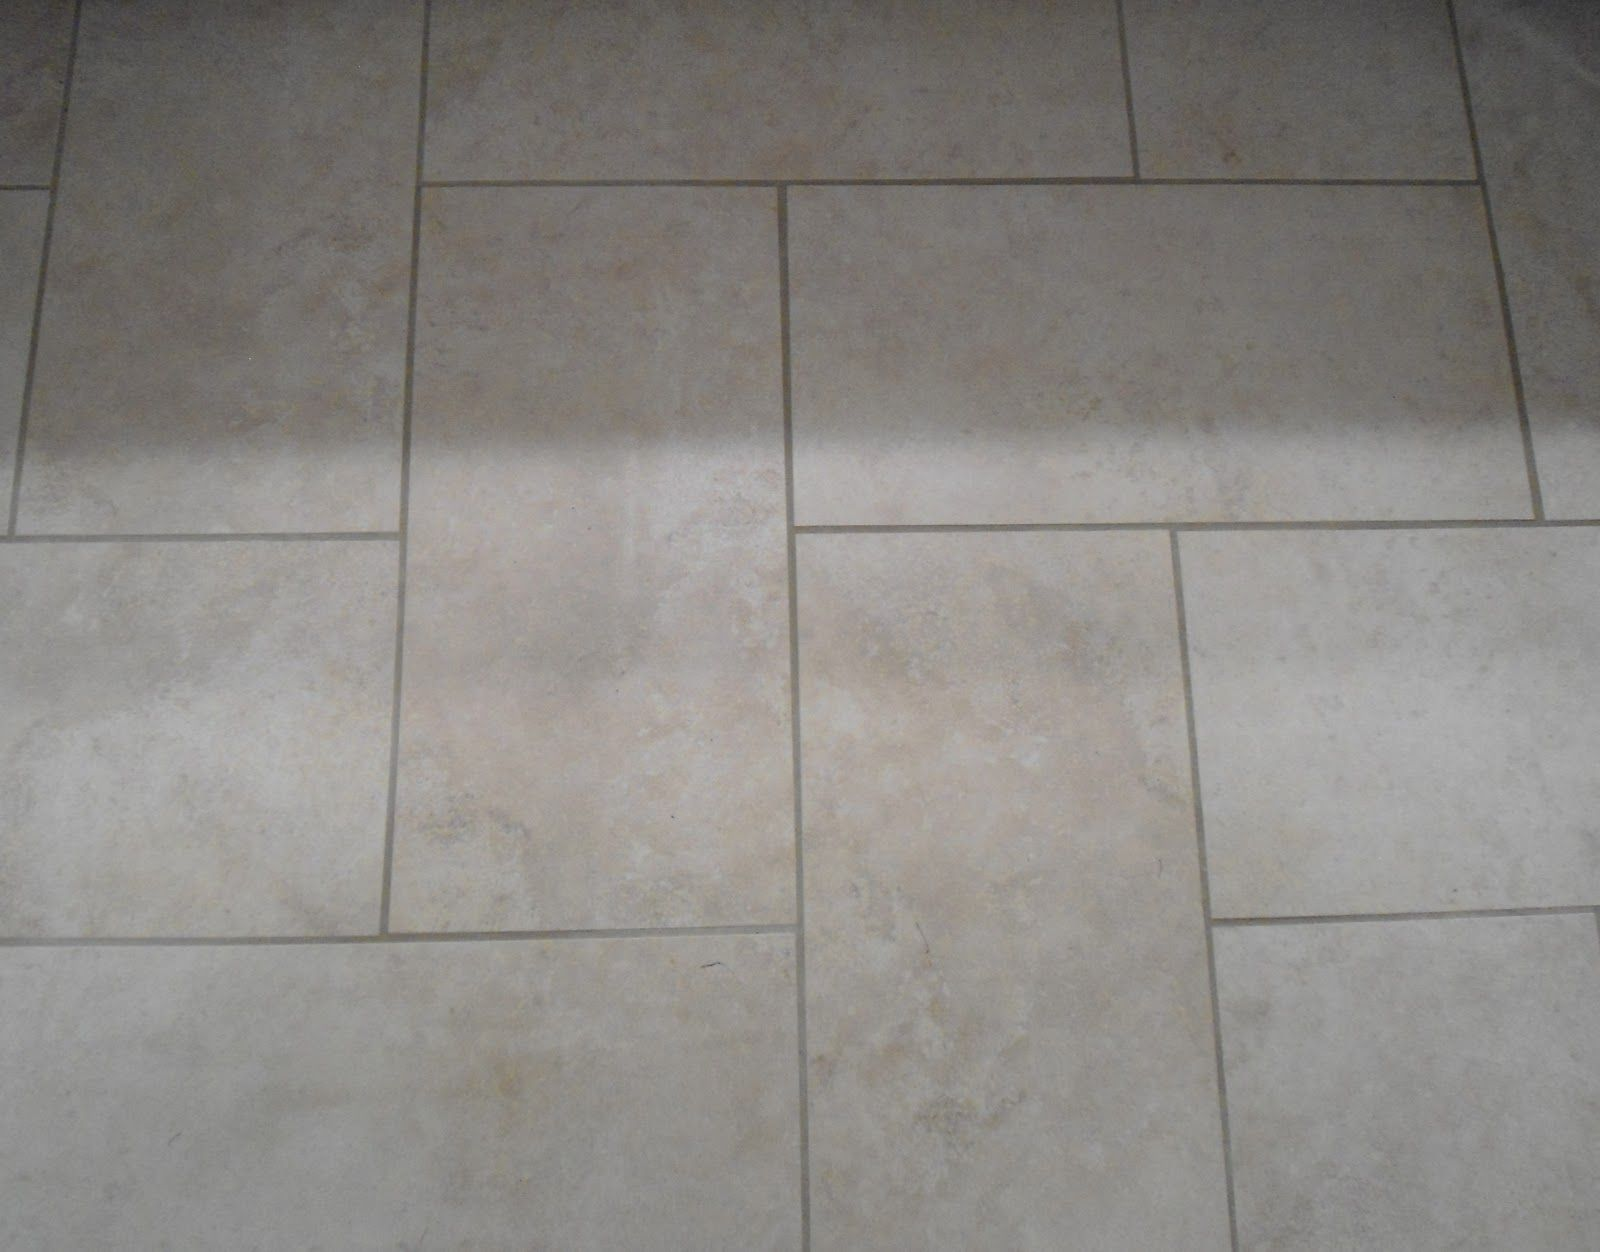 Pictures Of Different Tile Patterns 12x 24 Plank Tiles By Stone